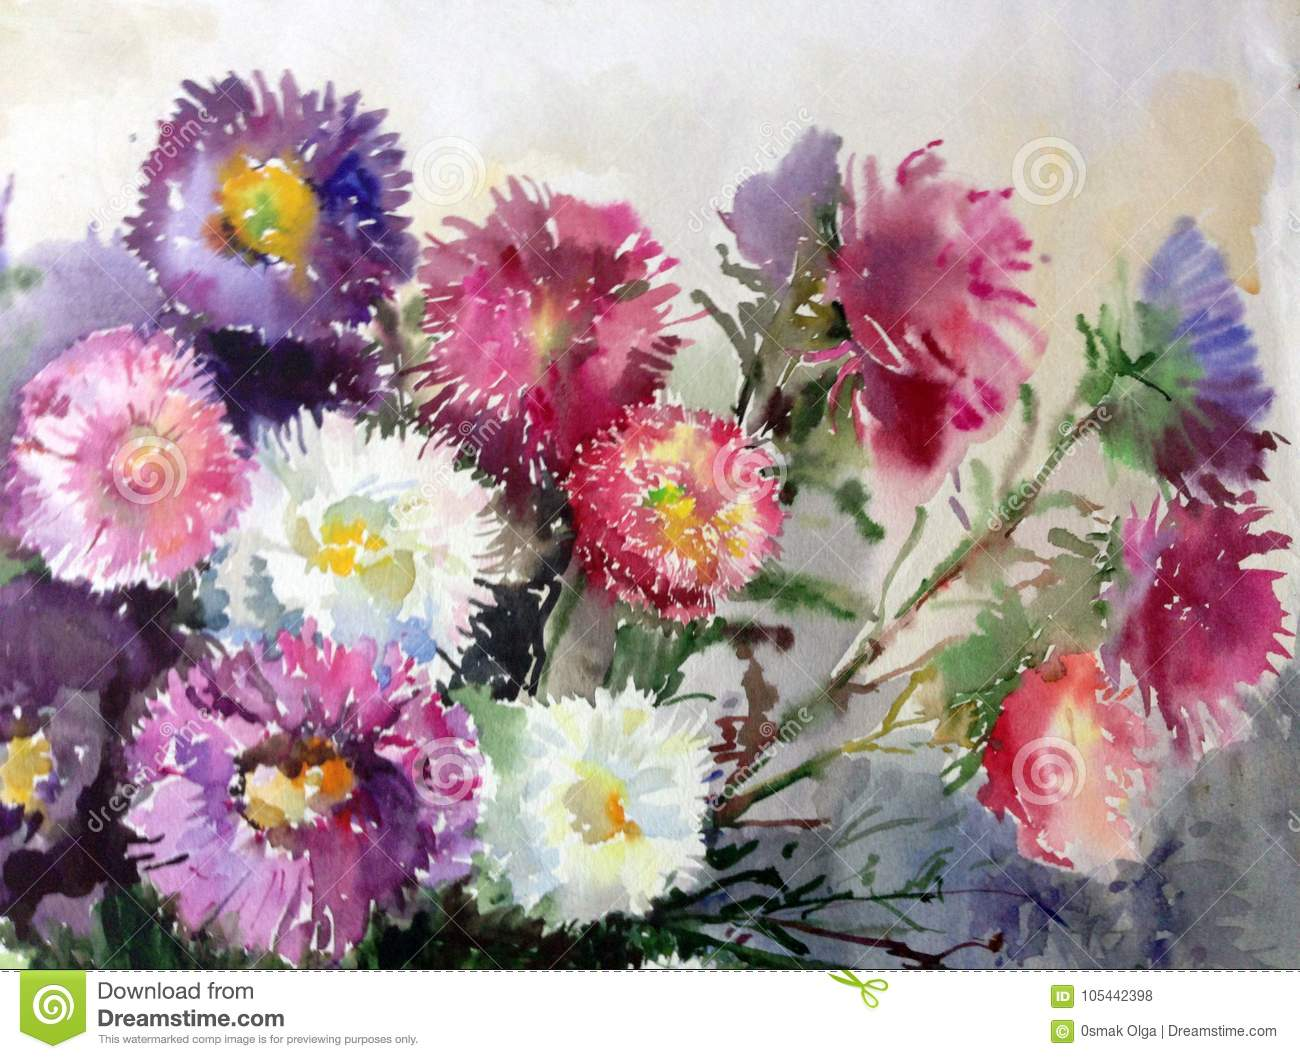 Watercolor art background colorful aster flower bouquet still life download watercolor art background colorful aster flower bouquet still life painting stock illustration illustration of izmirmasajfo